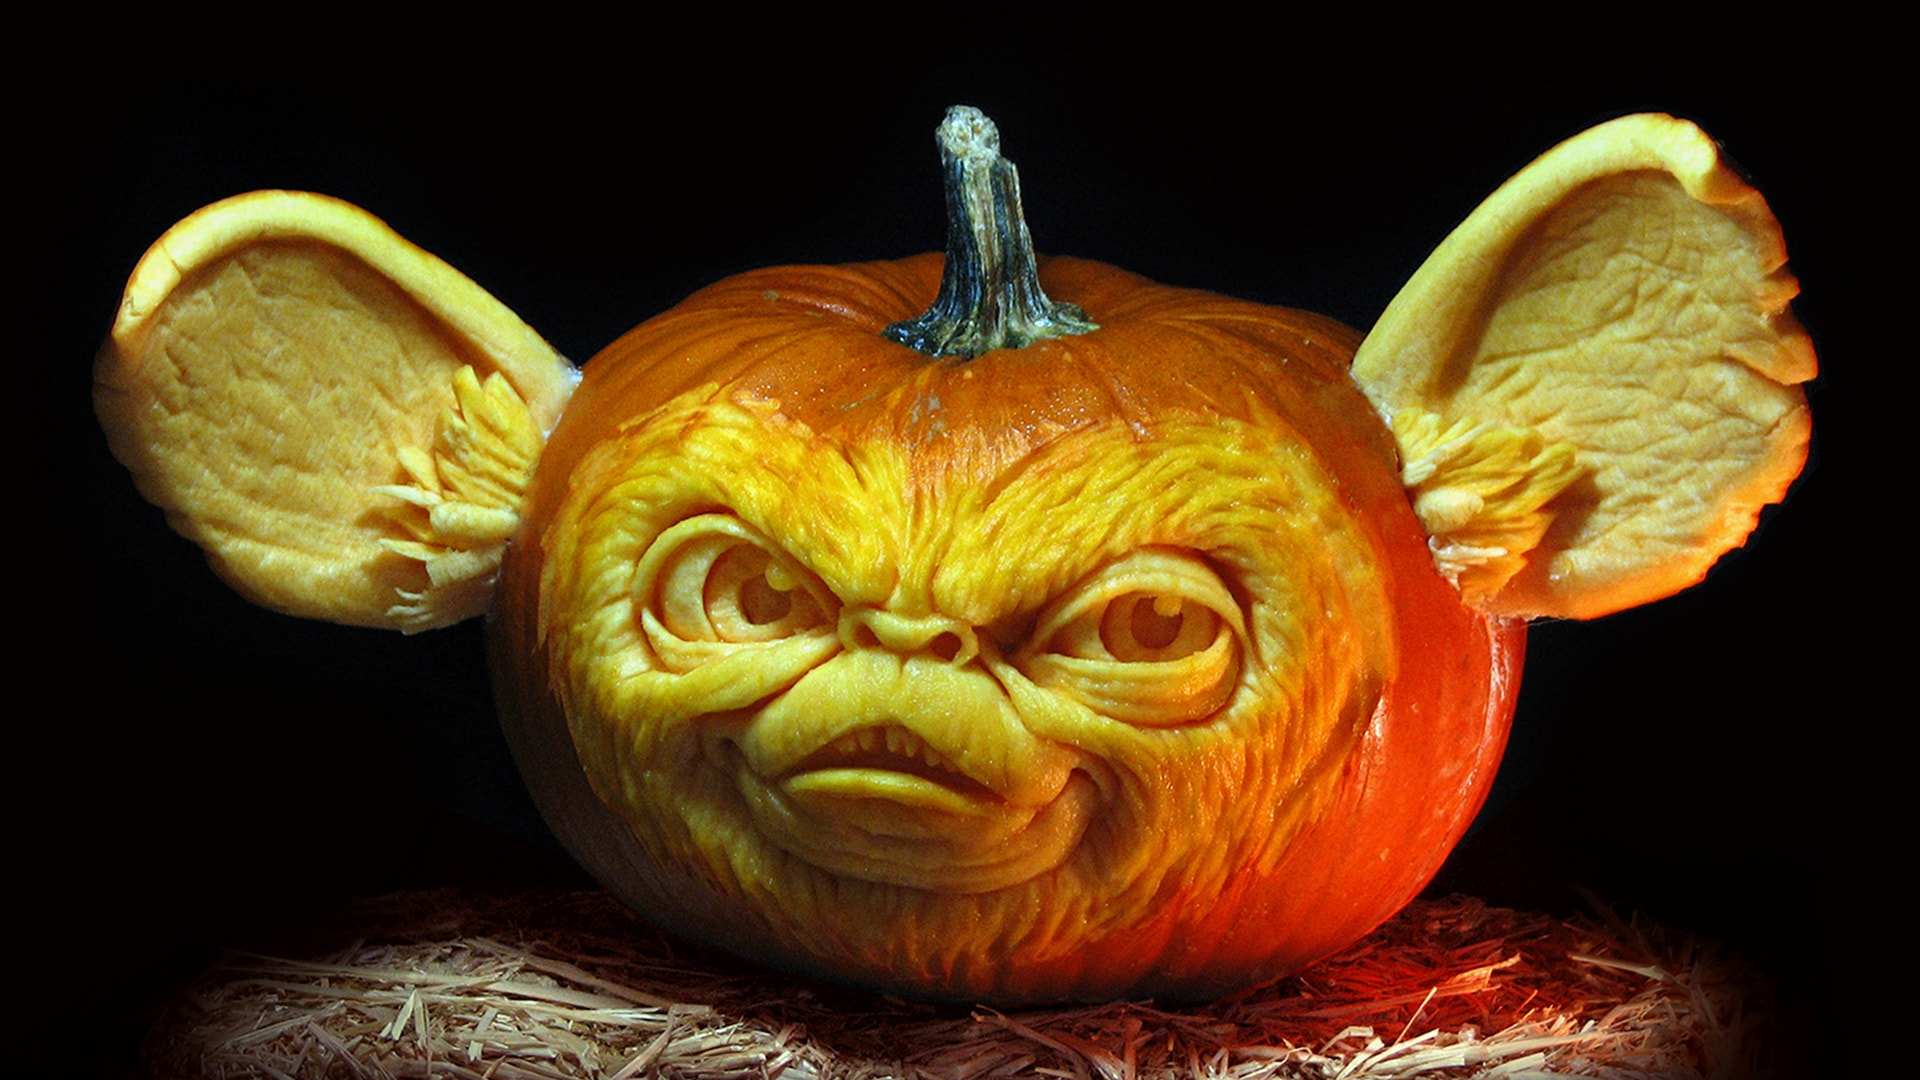 Superior Ghoulishly Grand Carved Pumpkins